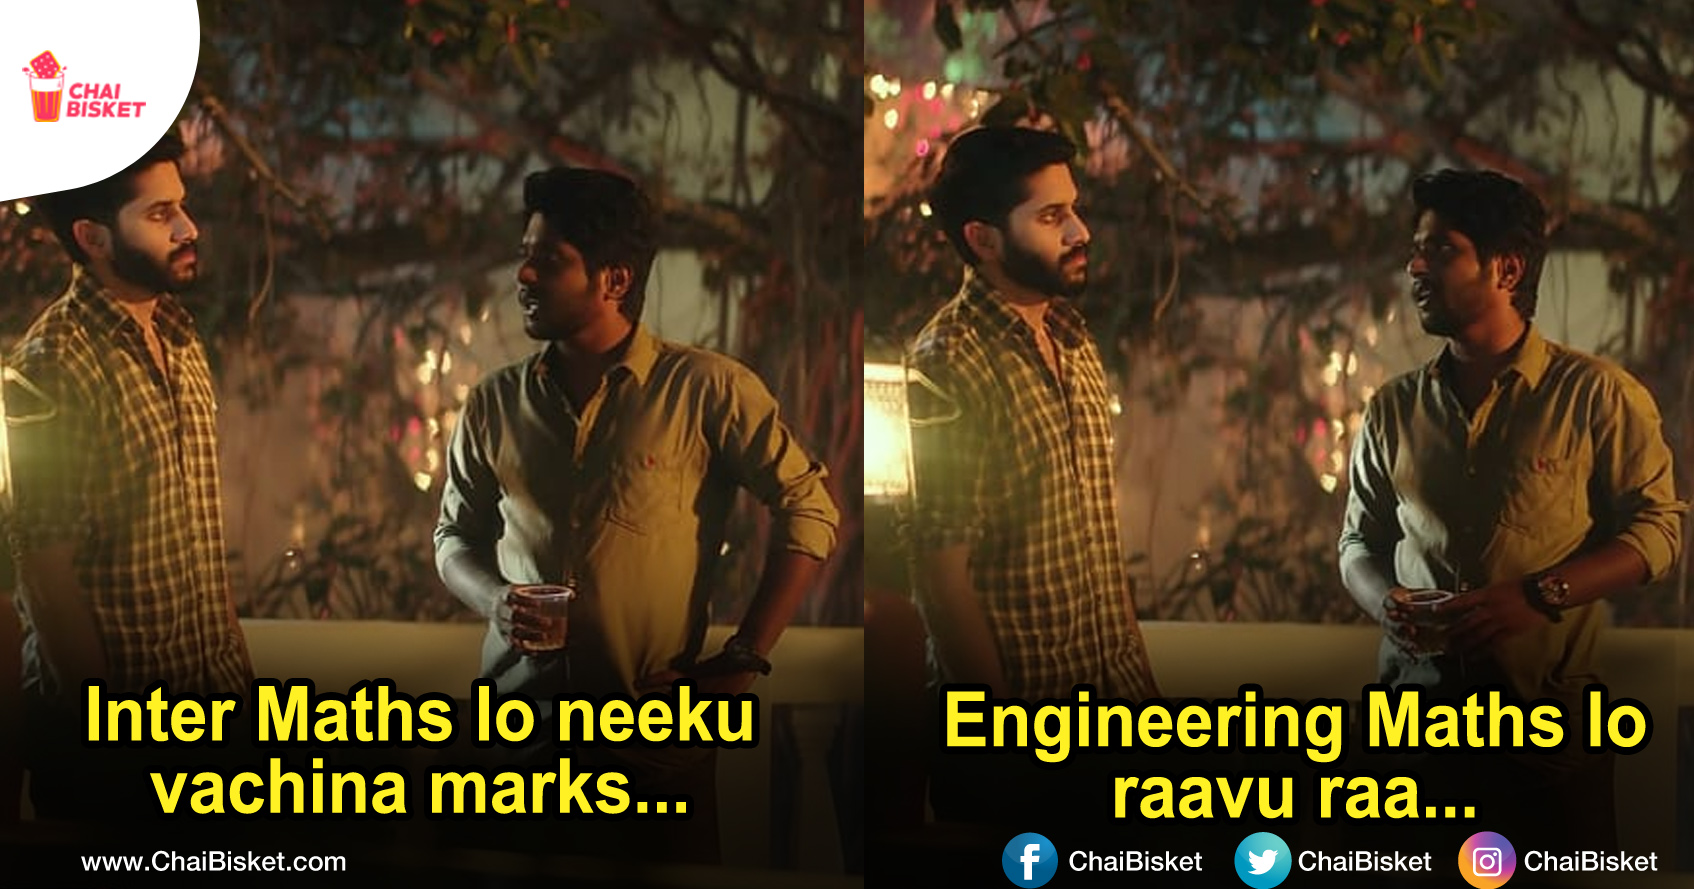 We Reimagined Majili's Famous Dialogue In Various Situations